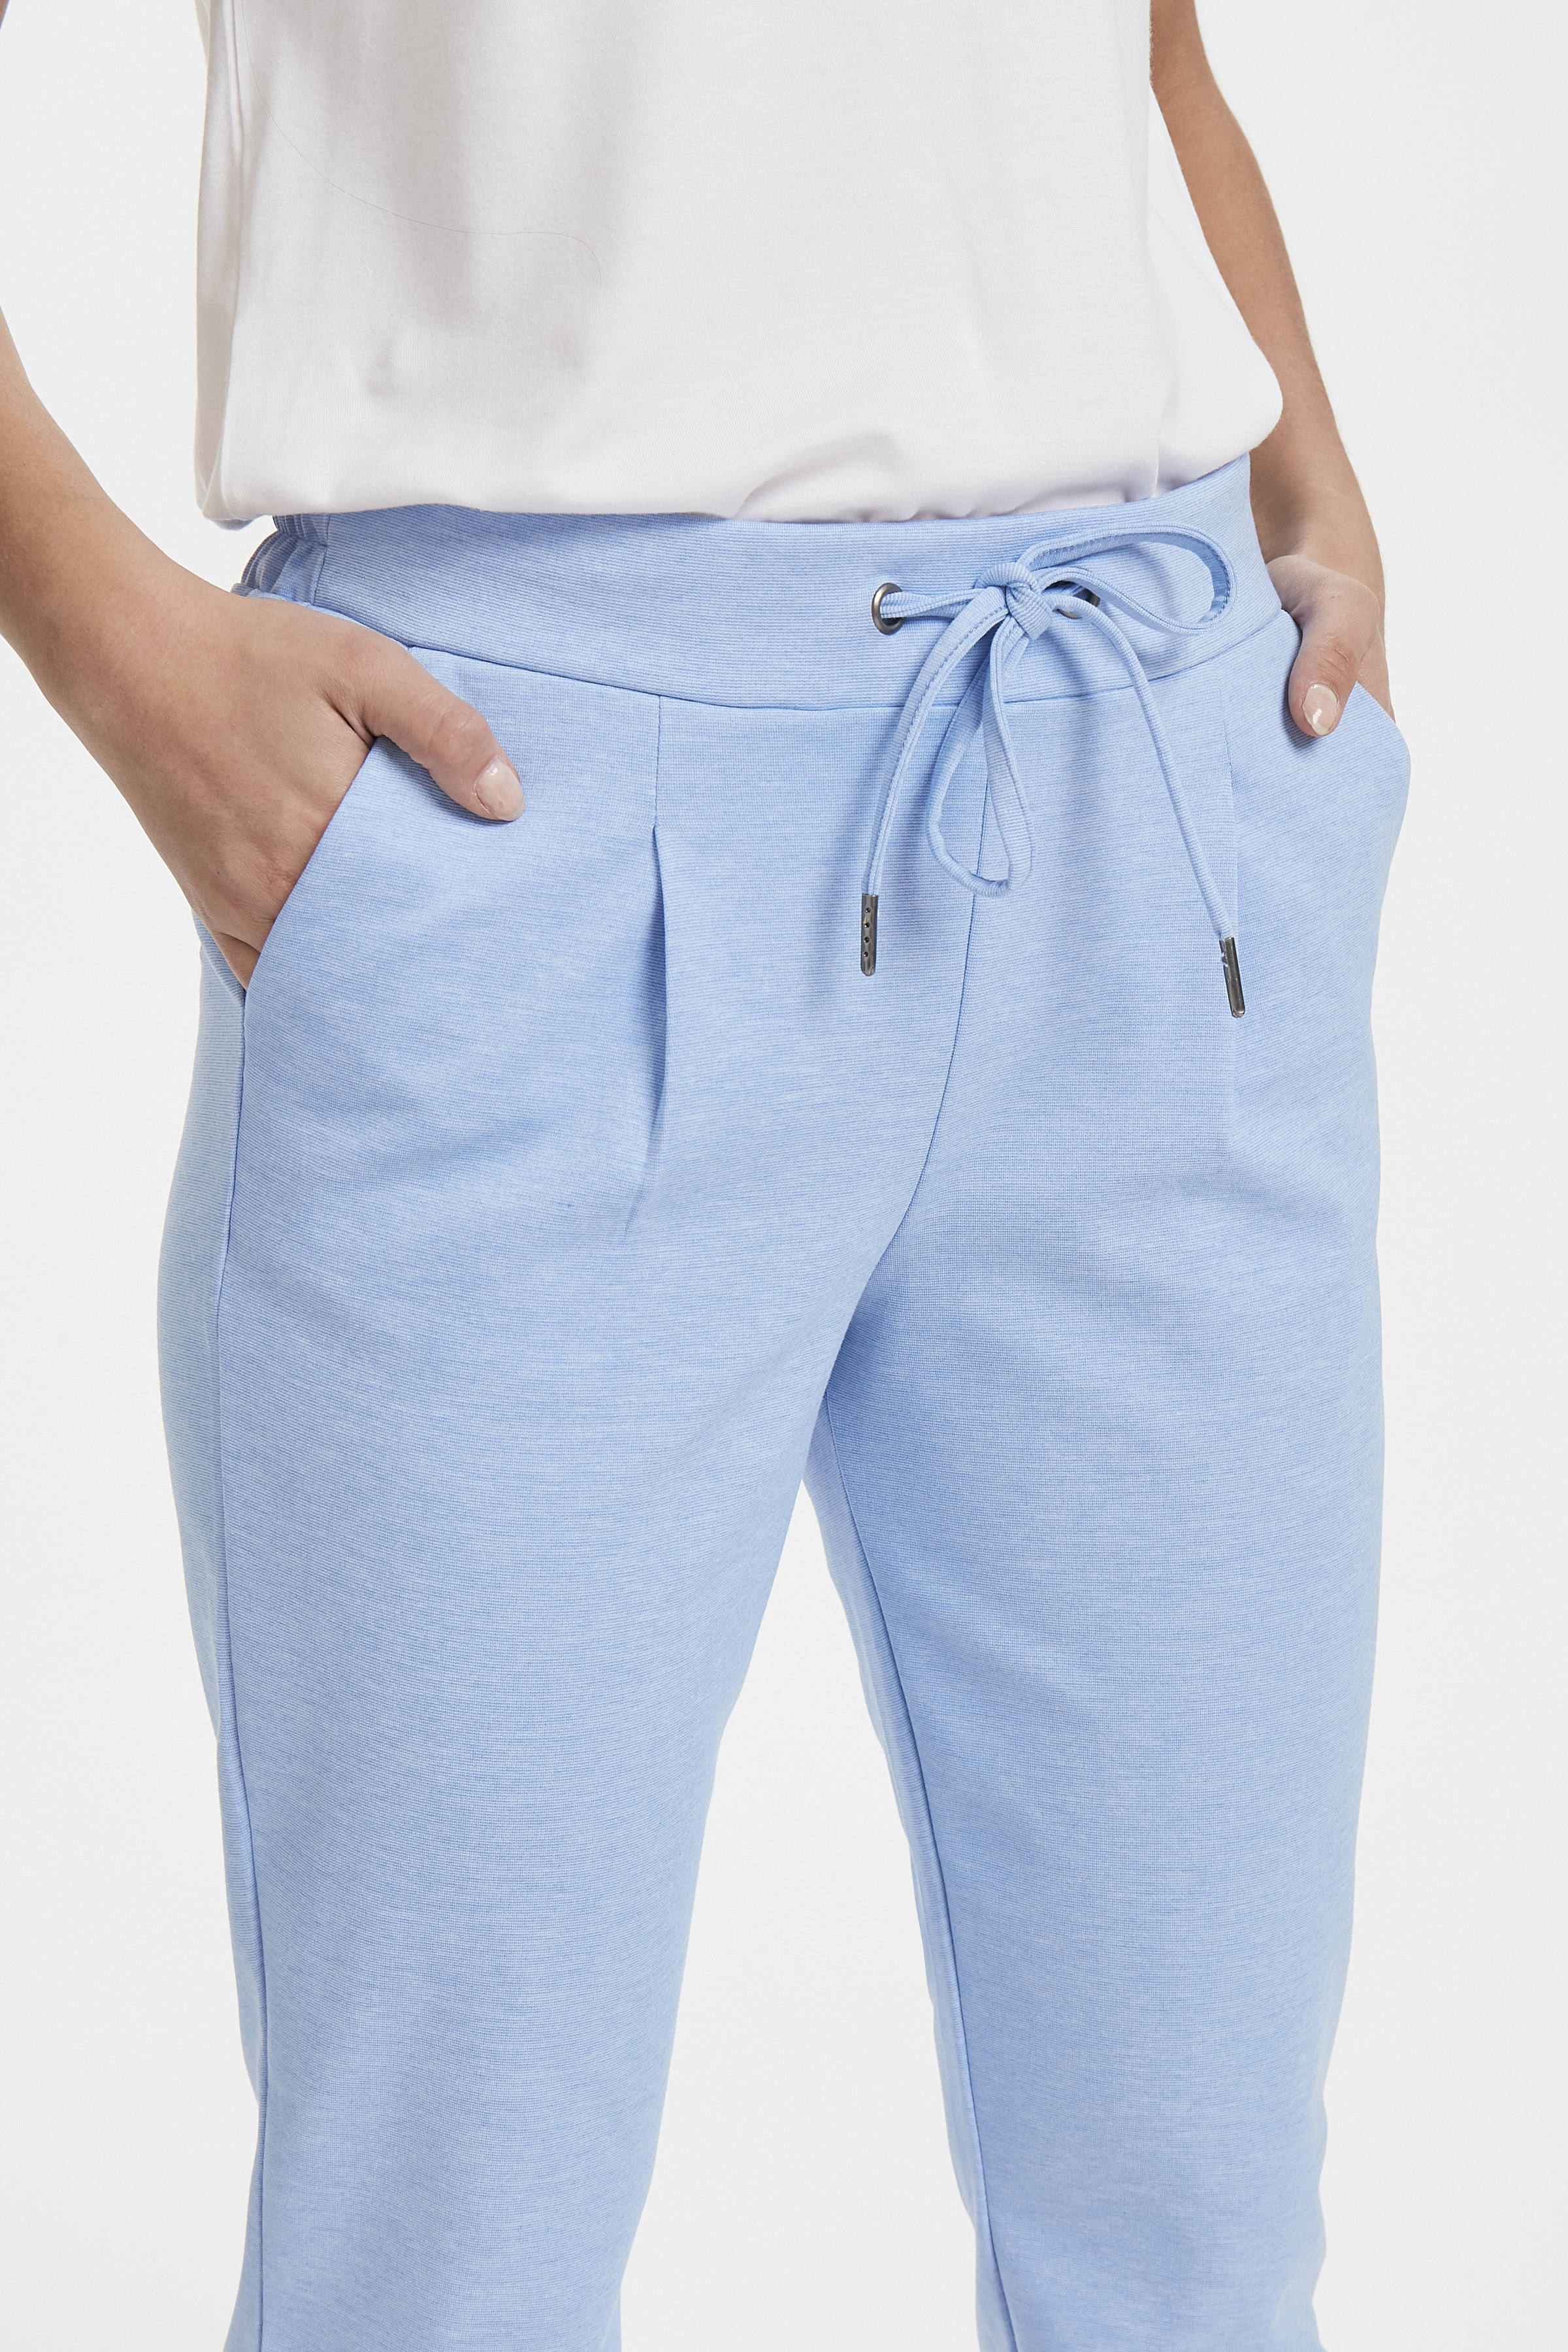 Cornflower Blue Mel. Pants Casual fra b.young – Køb Cornflower Blue Mel. Pants Casual fra str. S-XXL her